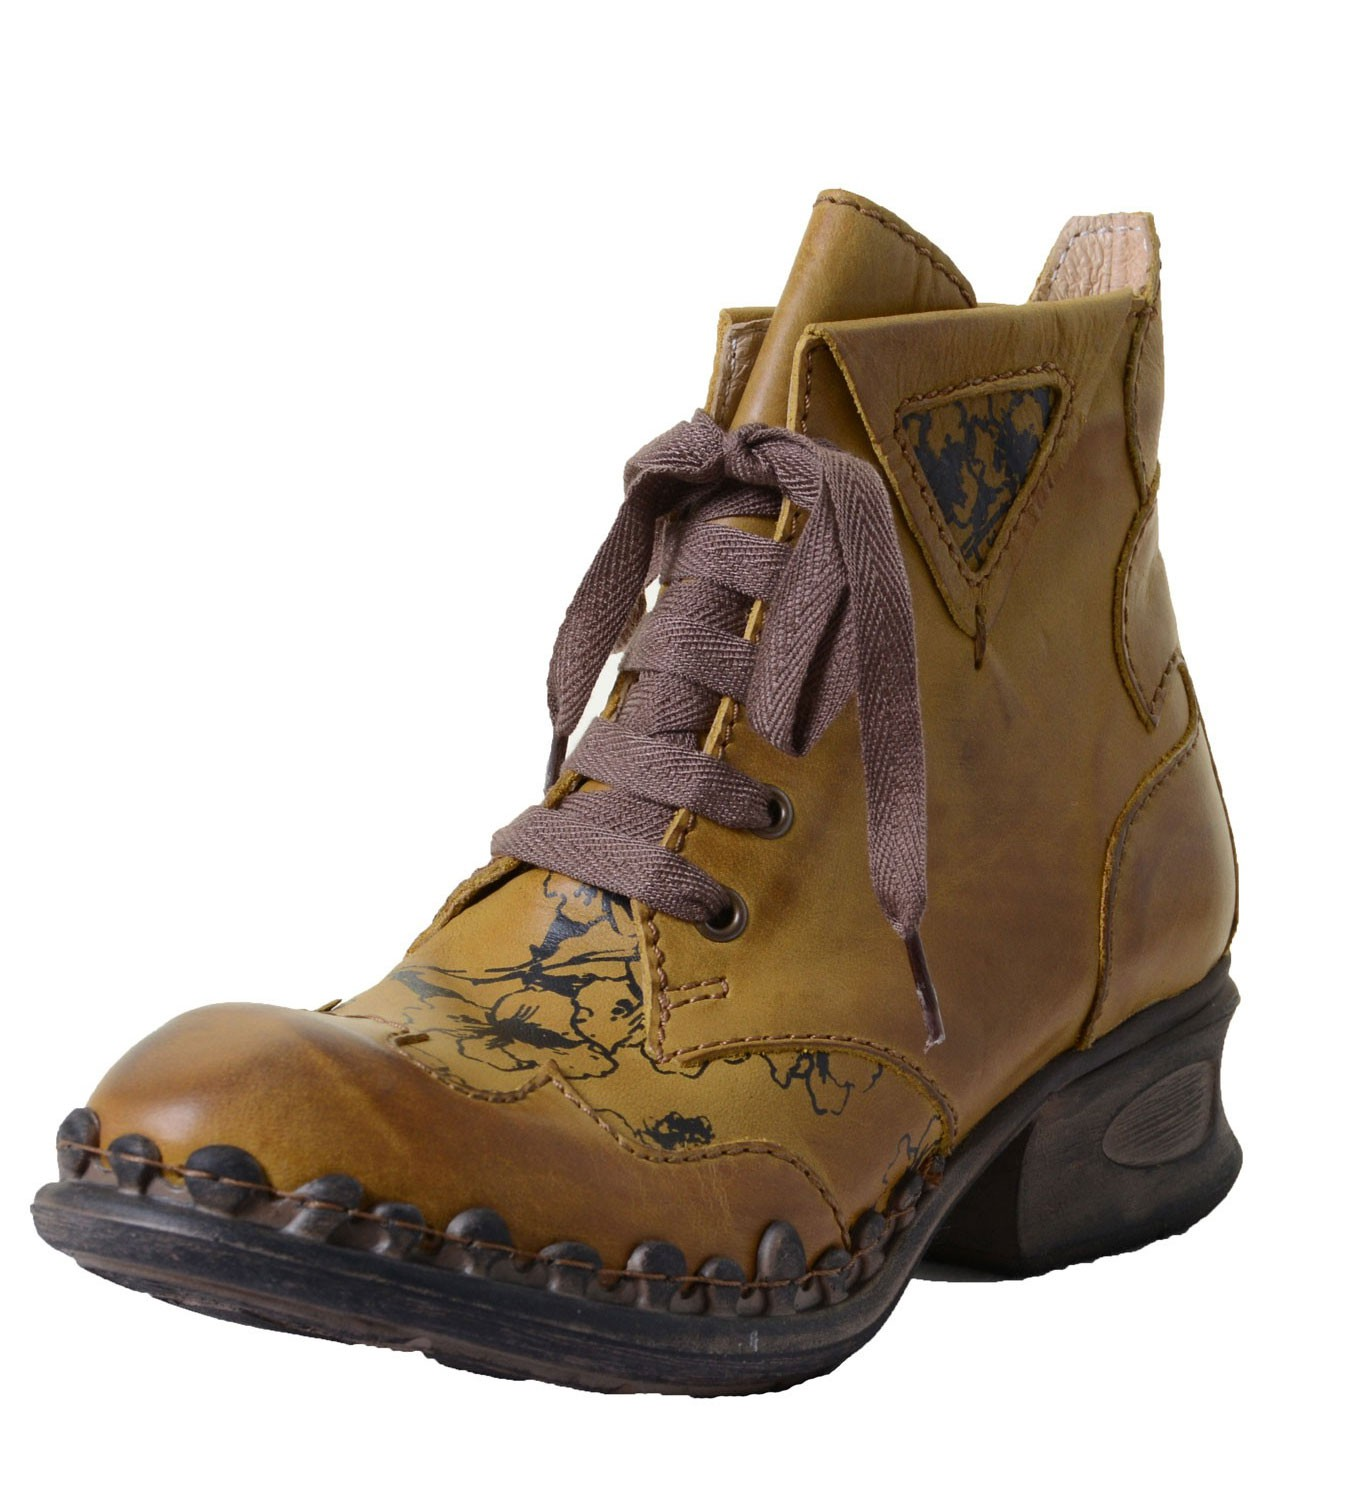 Rovers Women's Leather Ankle boots yellow with floral ...